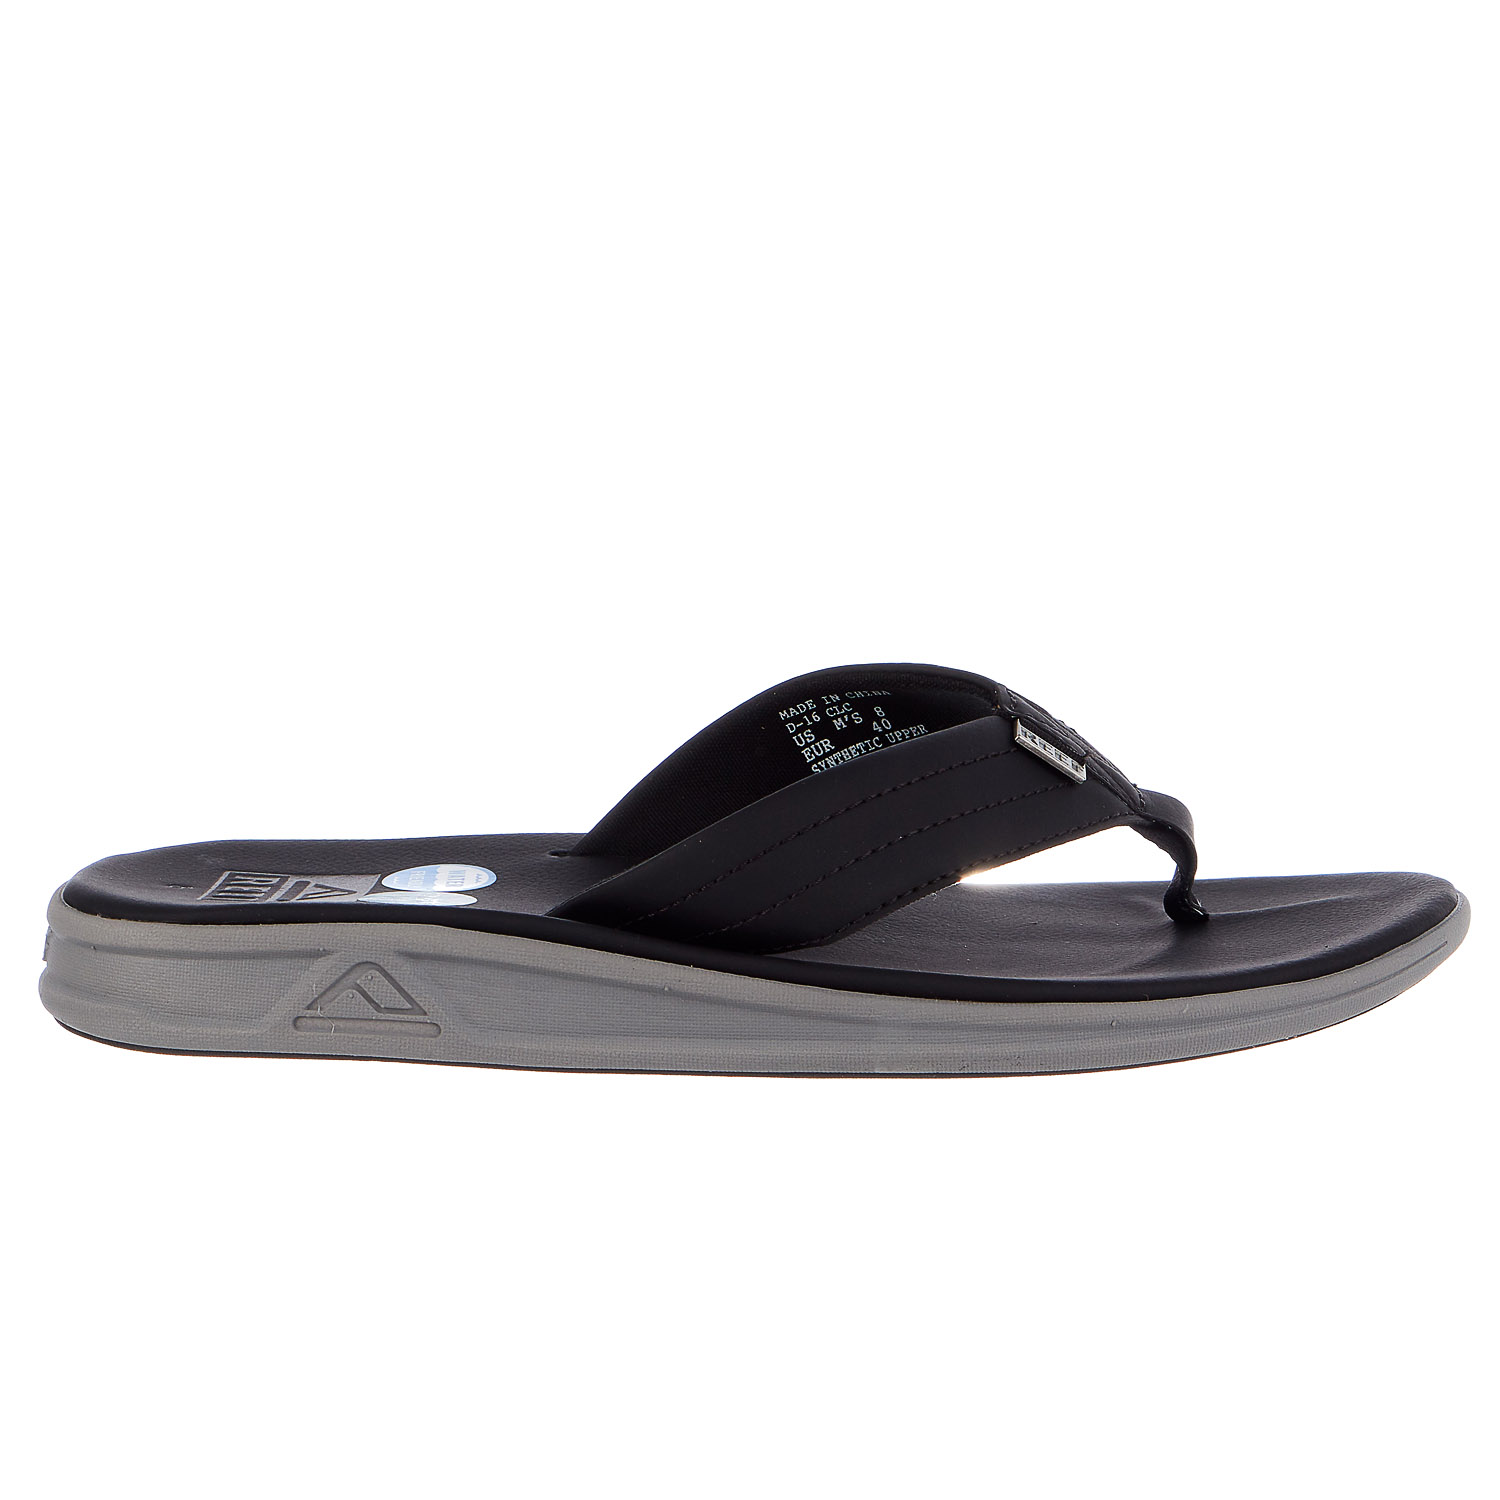 Reef Rover SL Flip Flop (Men) at HauteLook - Mens Slides - Mens Flip-Flops & Sandals